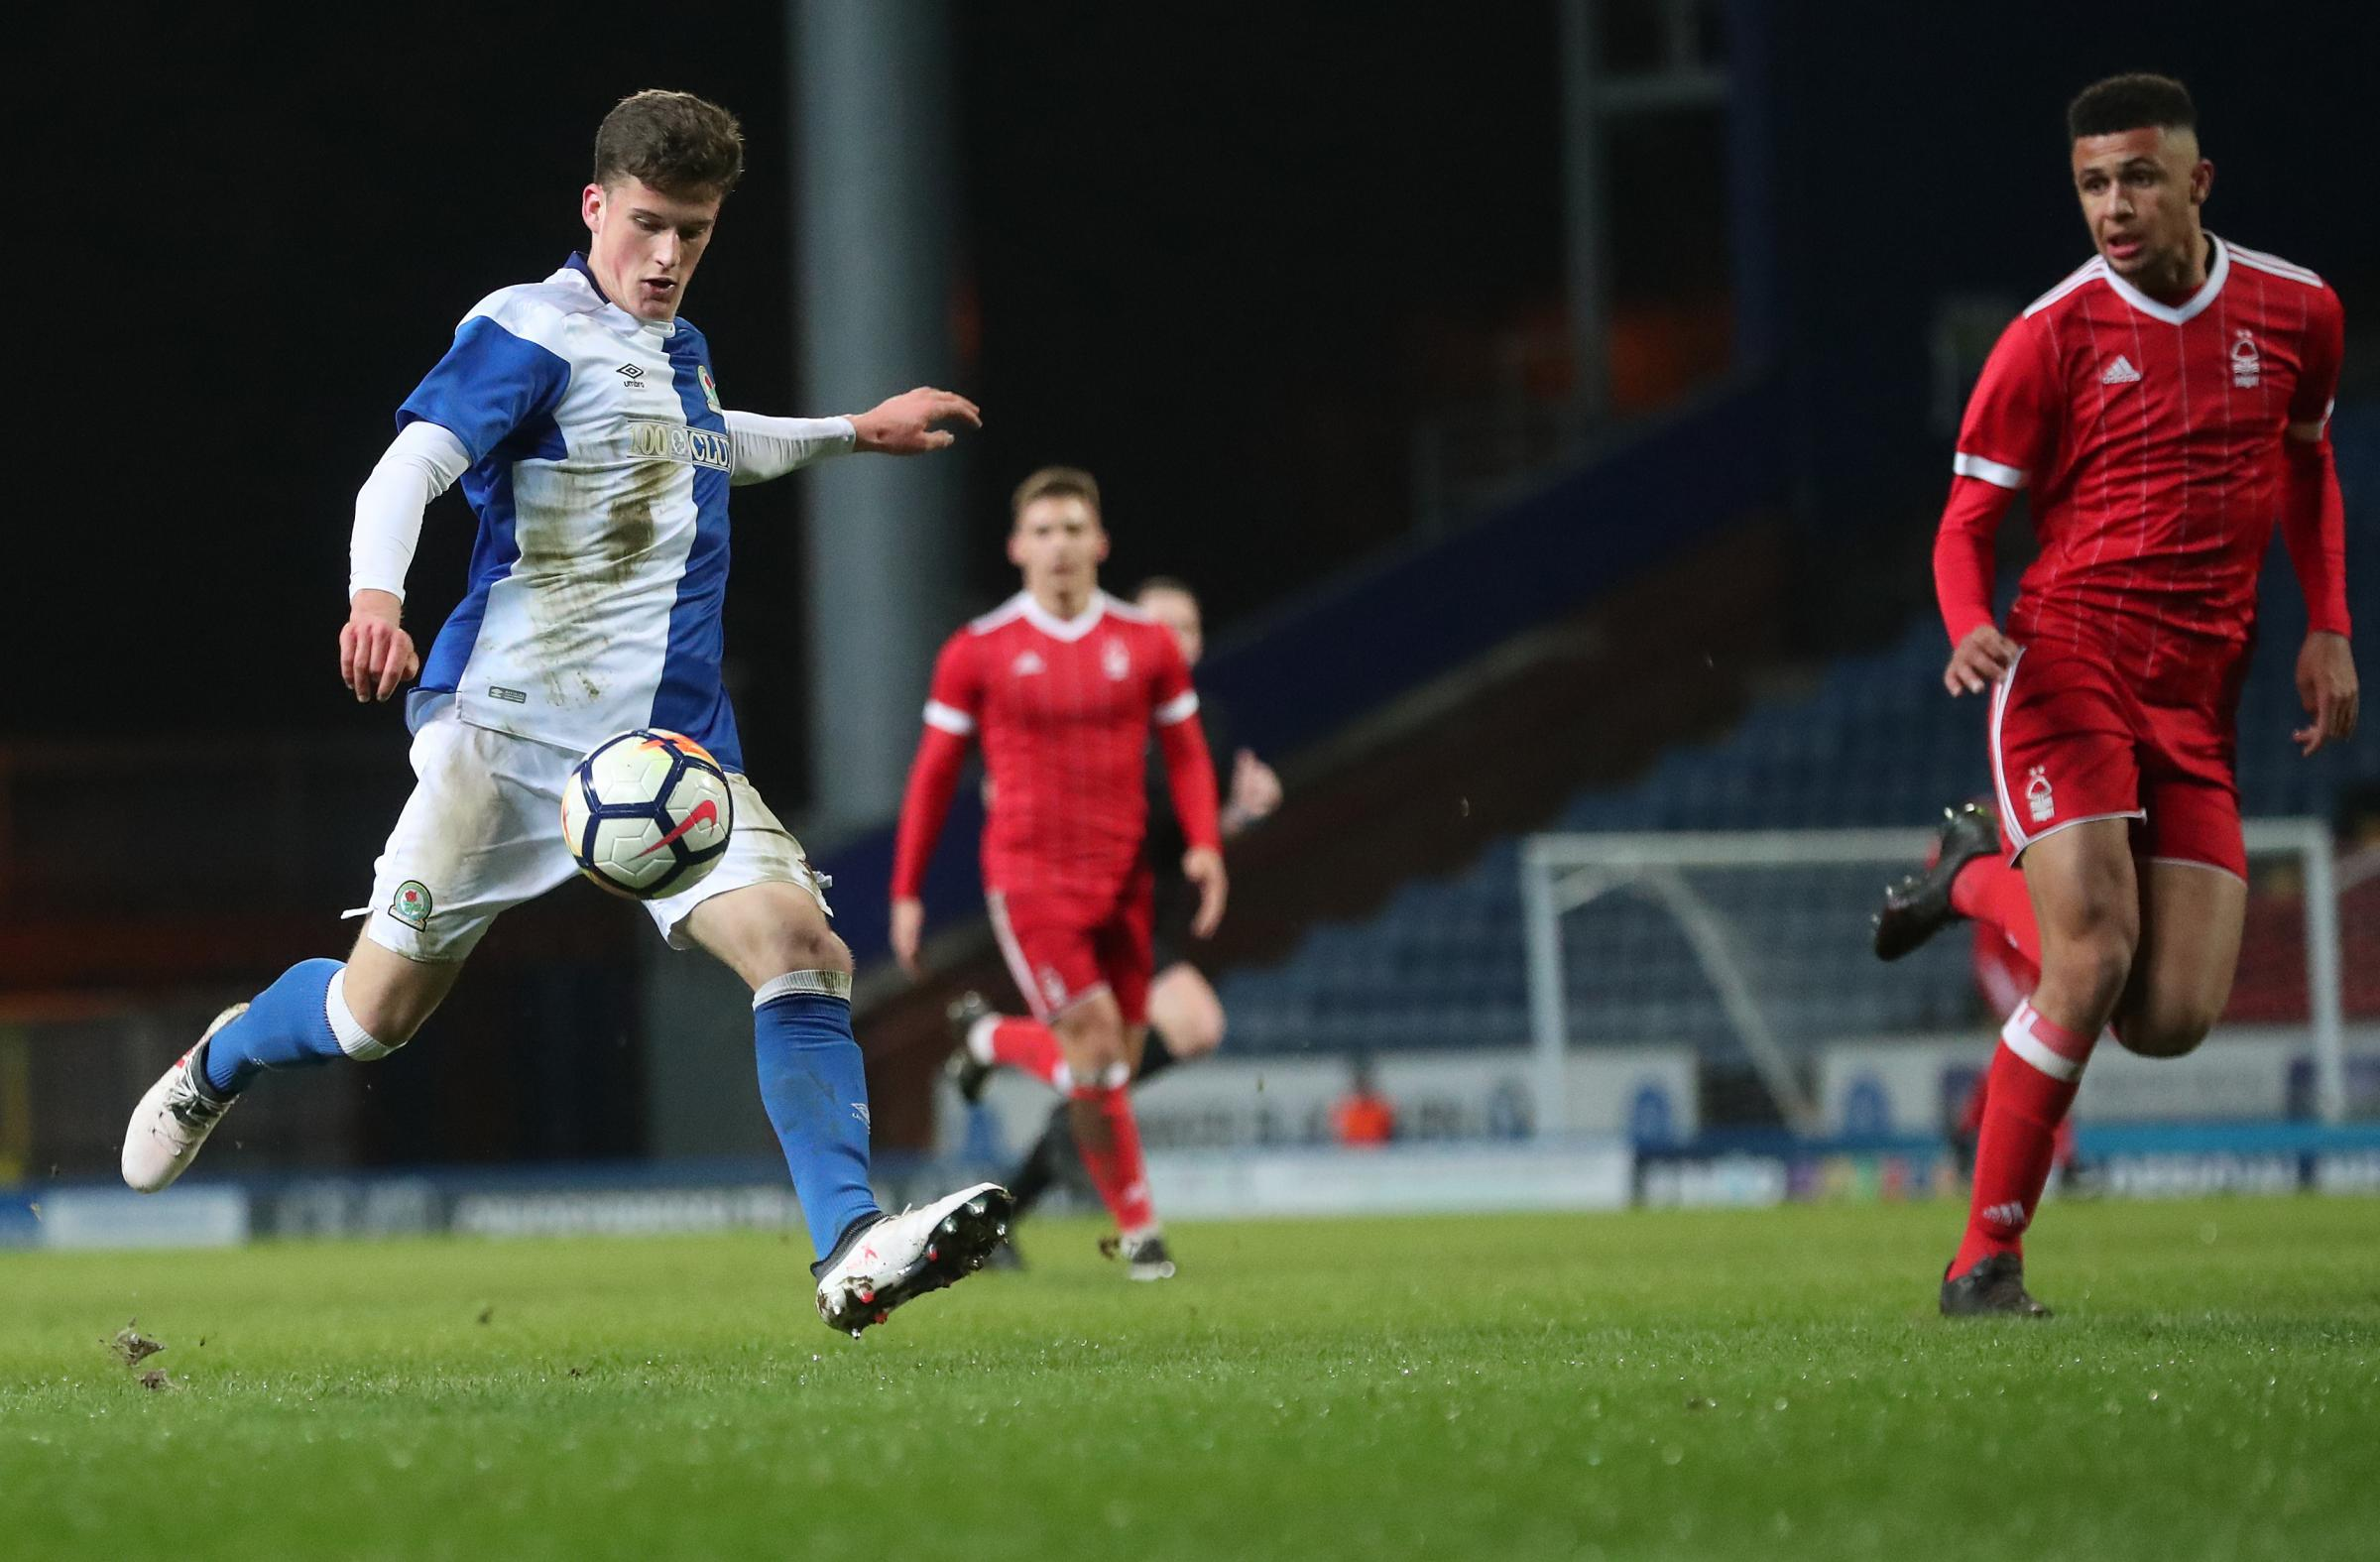 Blackburn Rovers' Jack Vale scores his side's first goal Picture: CAMERA SPORT